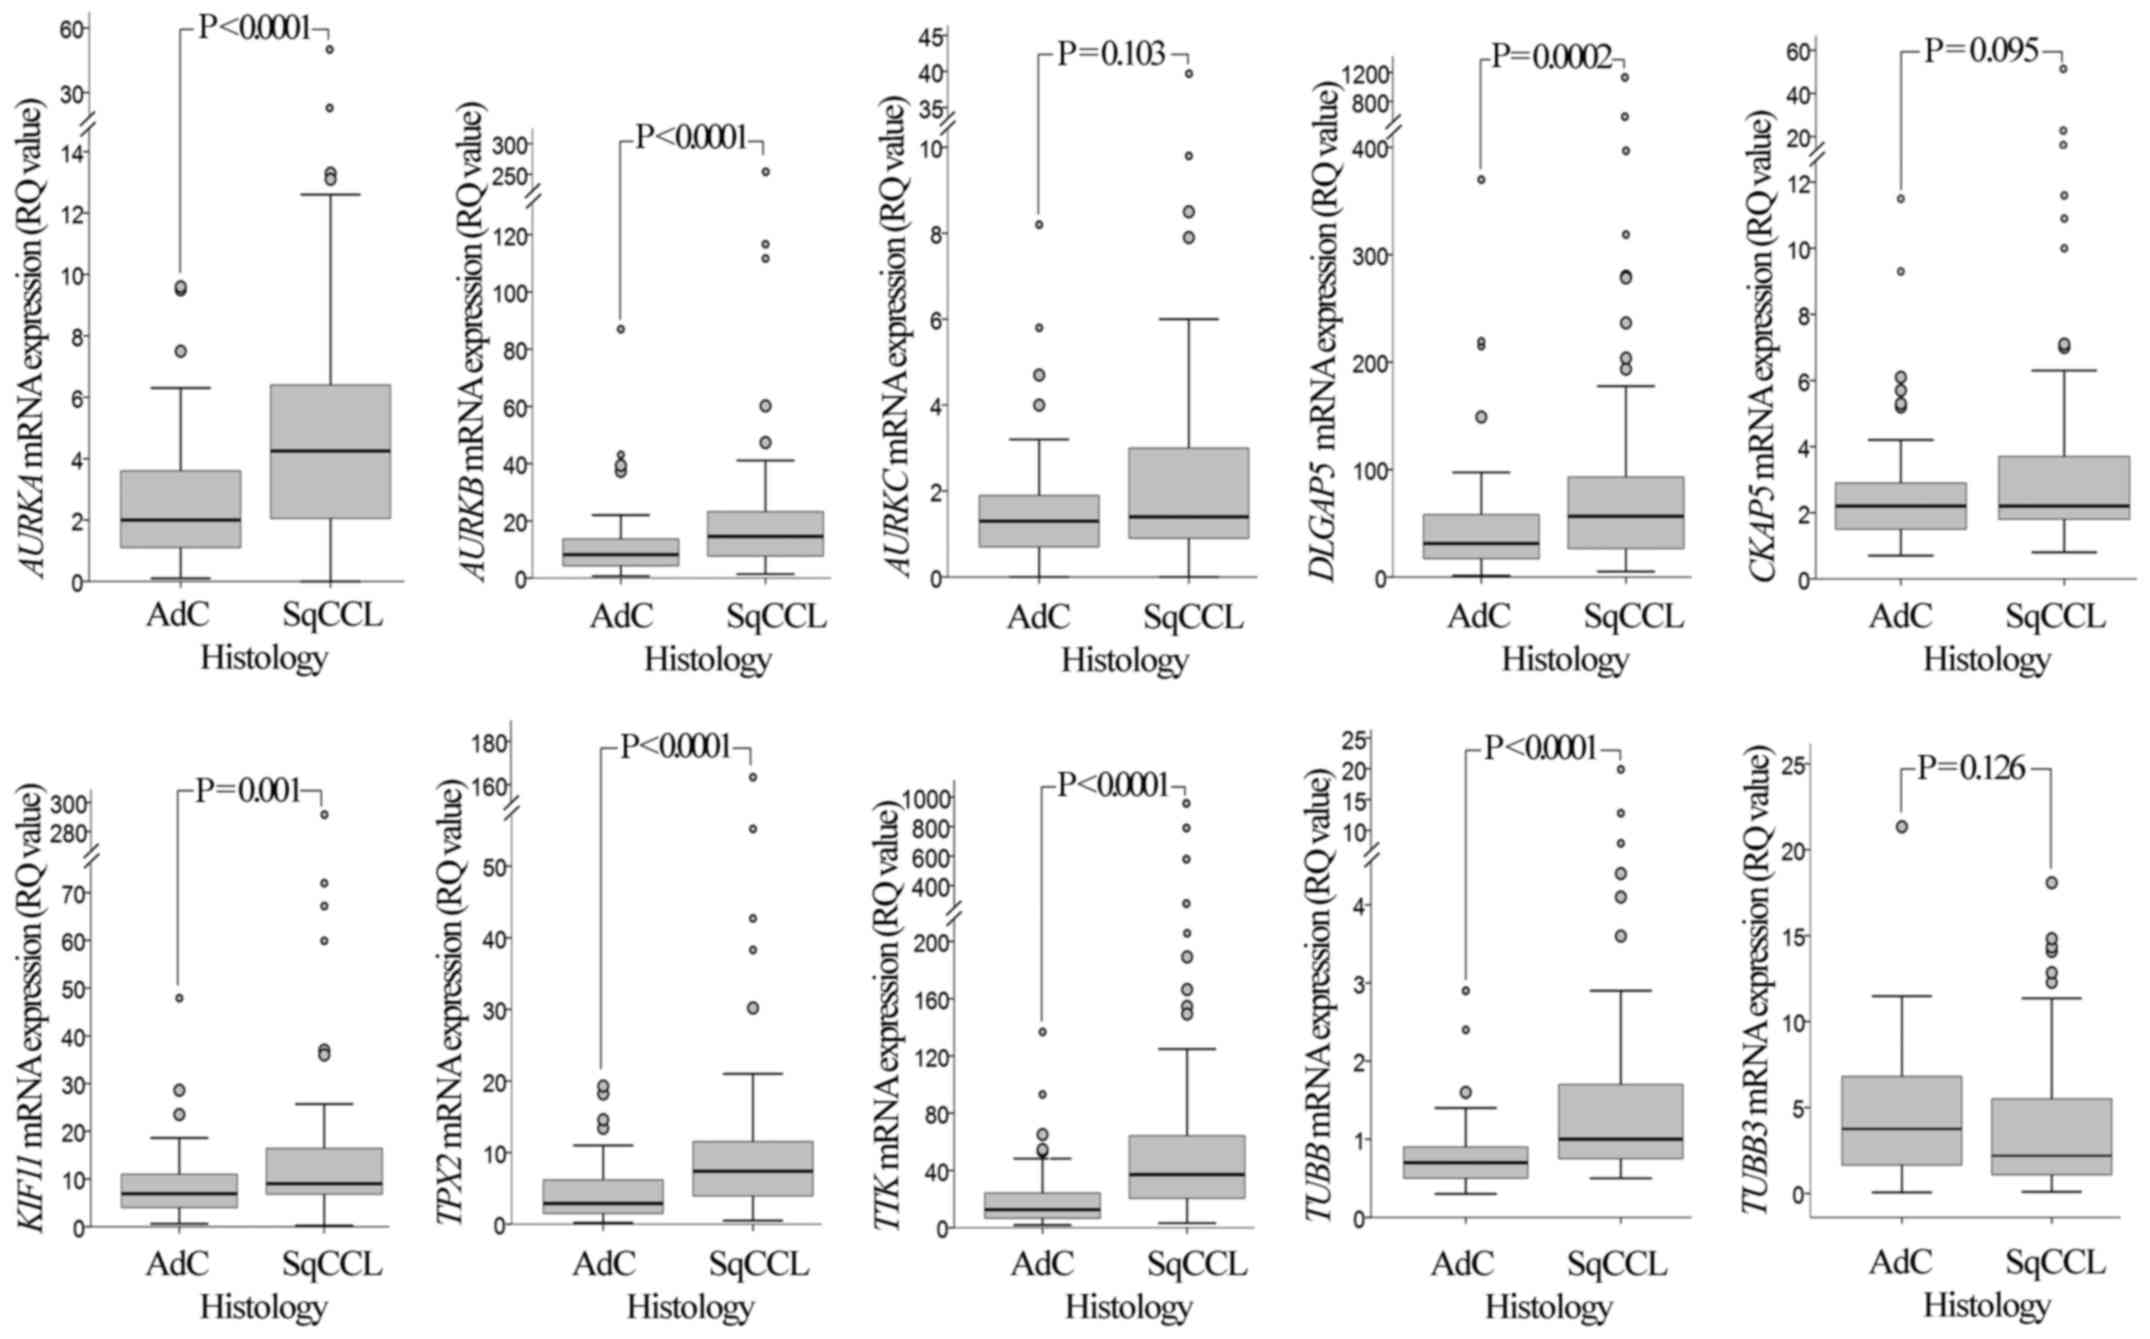 AURKA mRNA expression is an independent predictor of poor